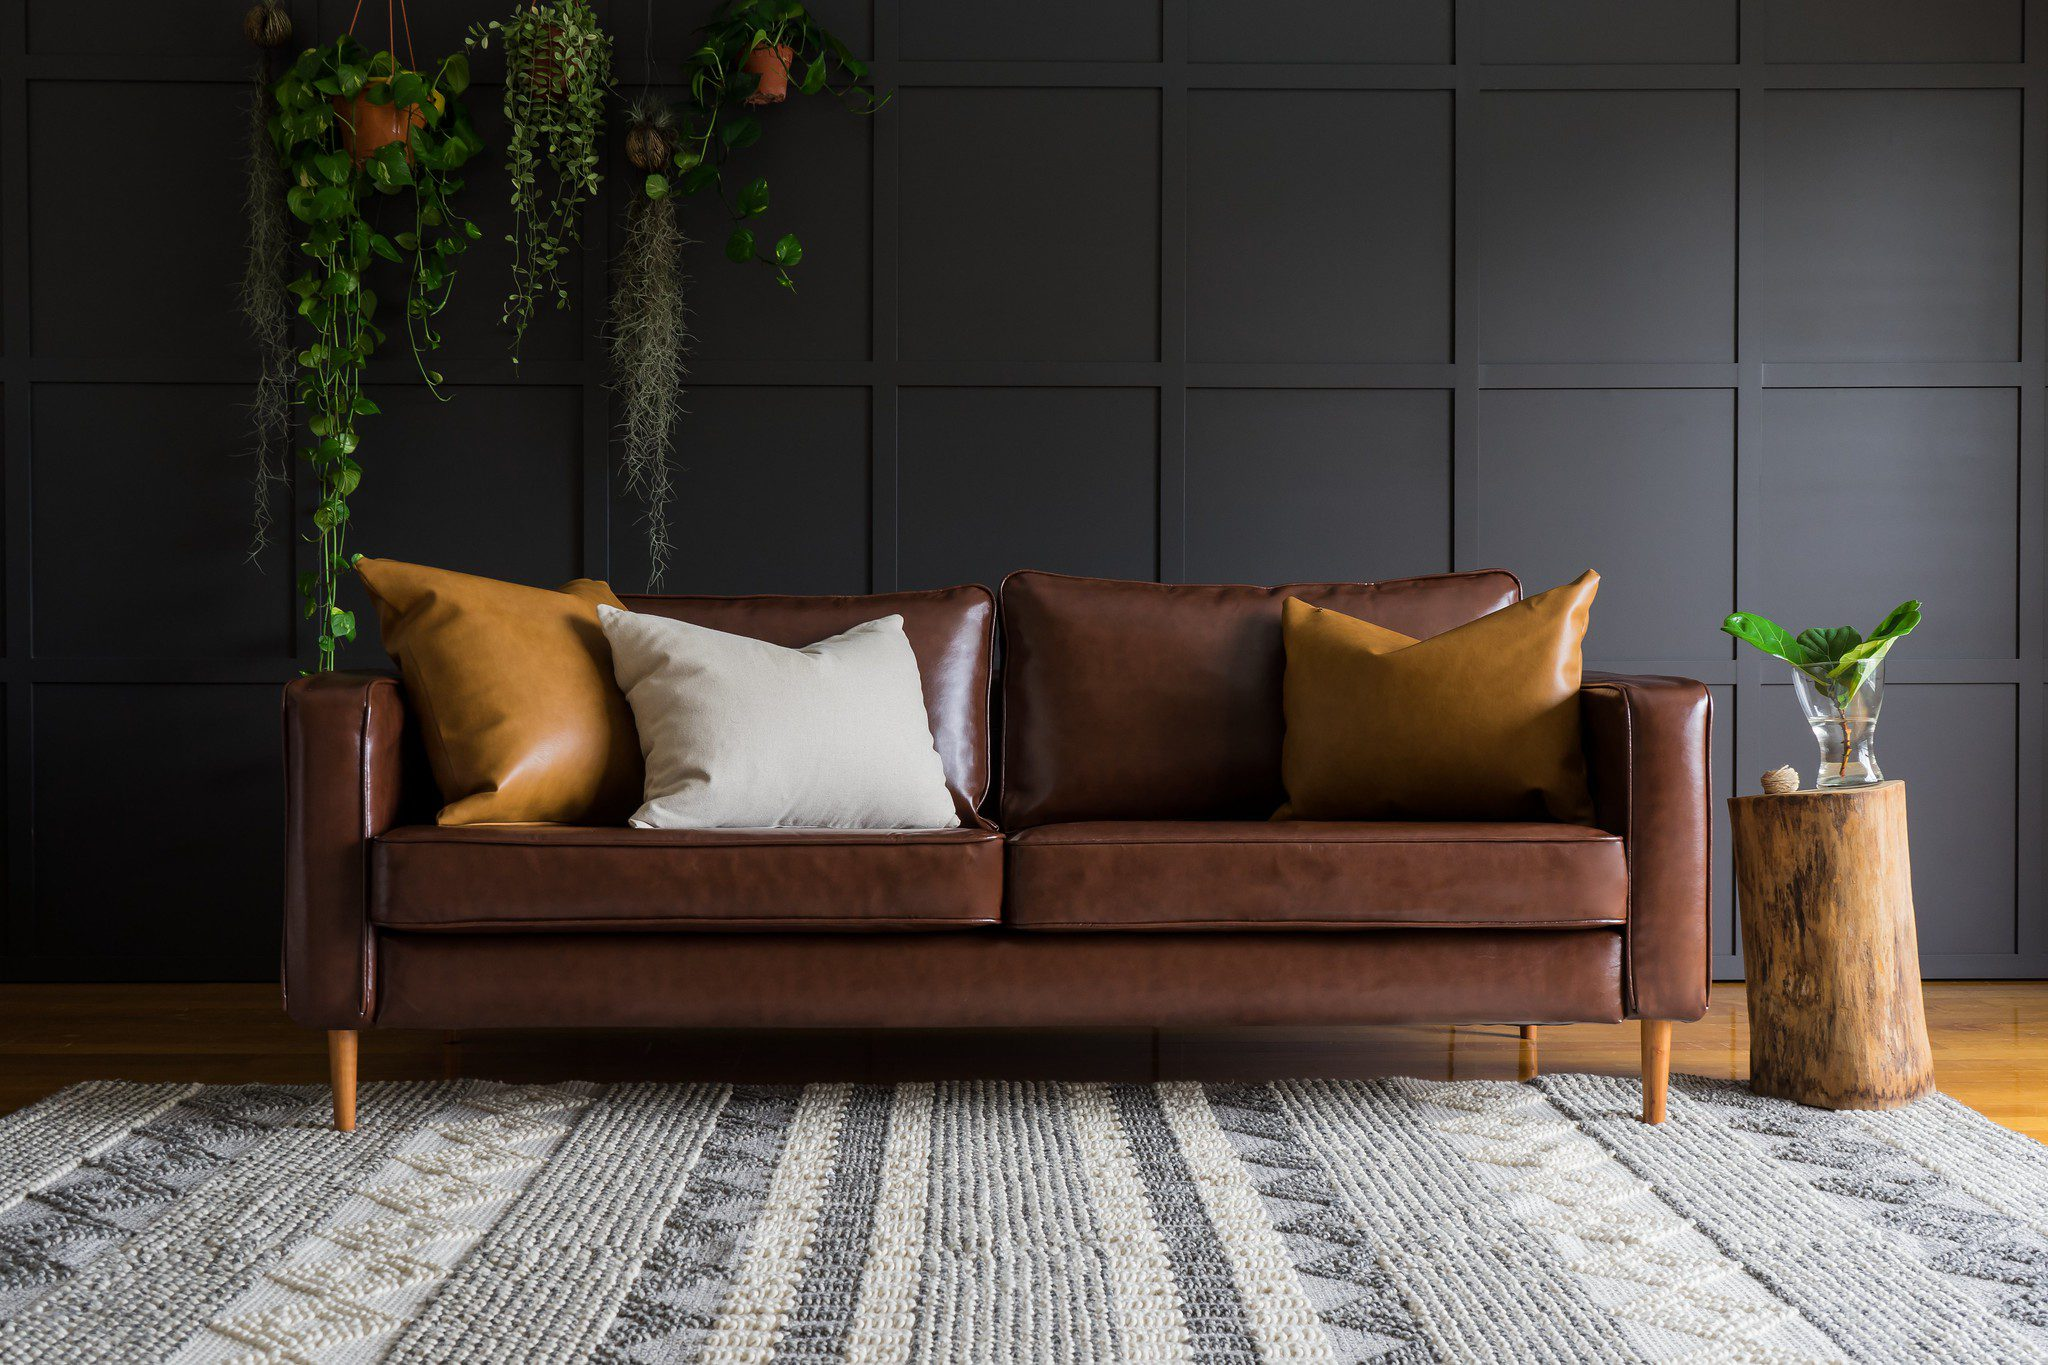 How to clean your leather couch safely and effectively